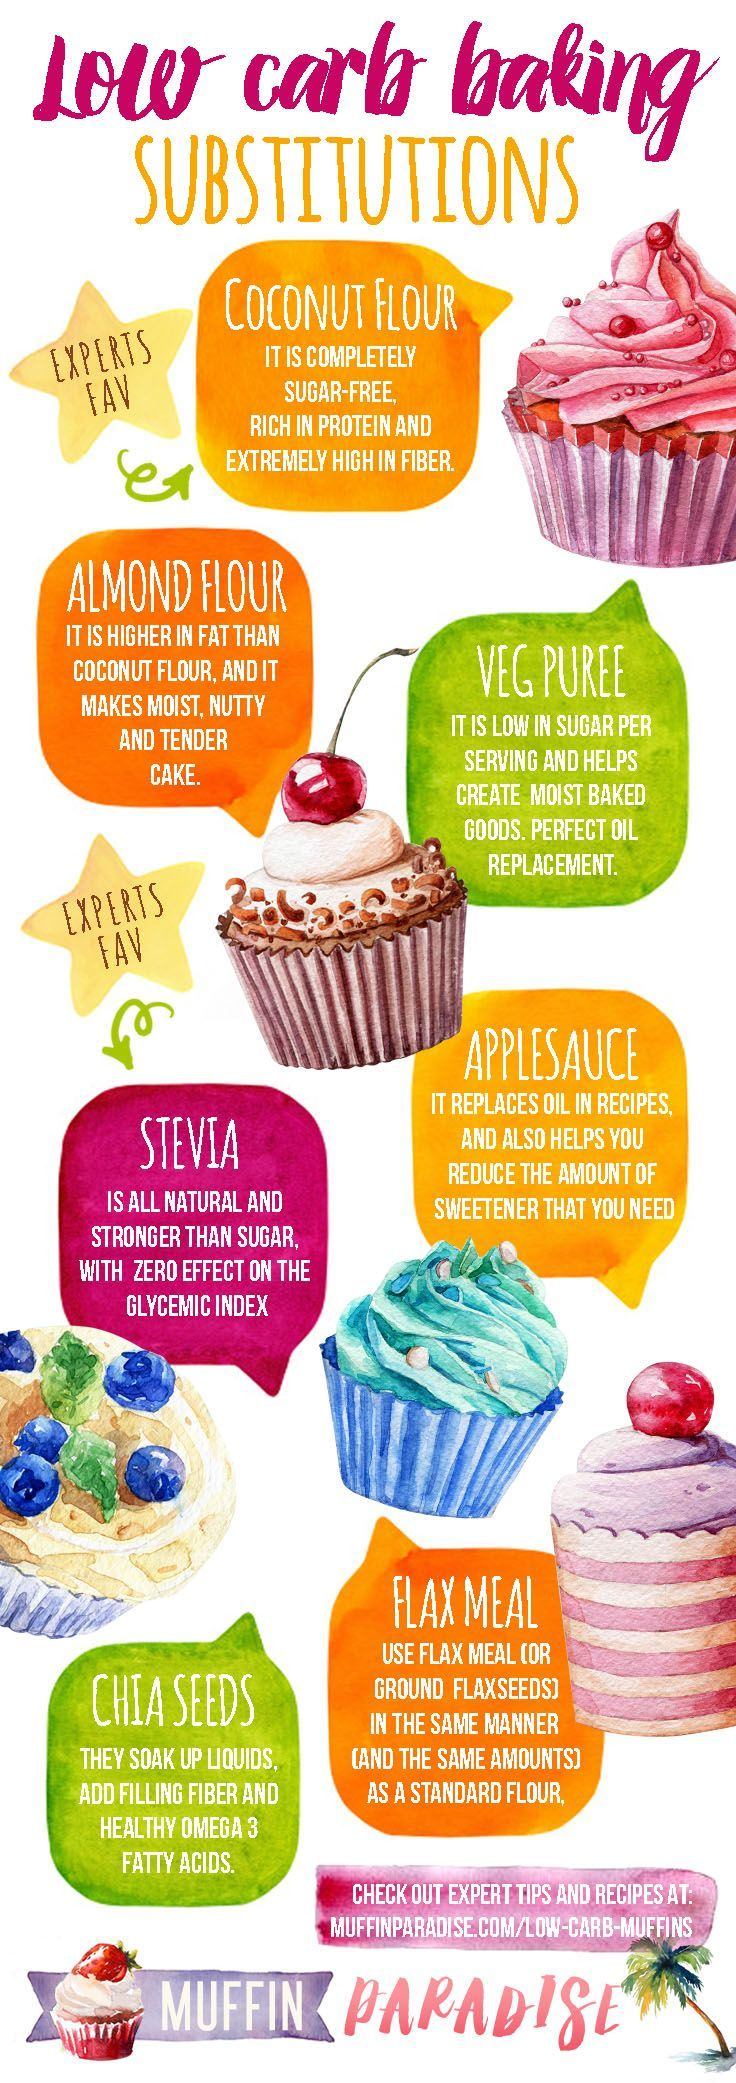 low carb muffins infographic keto paleo gluten free